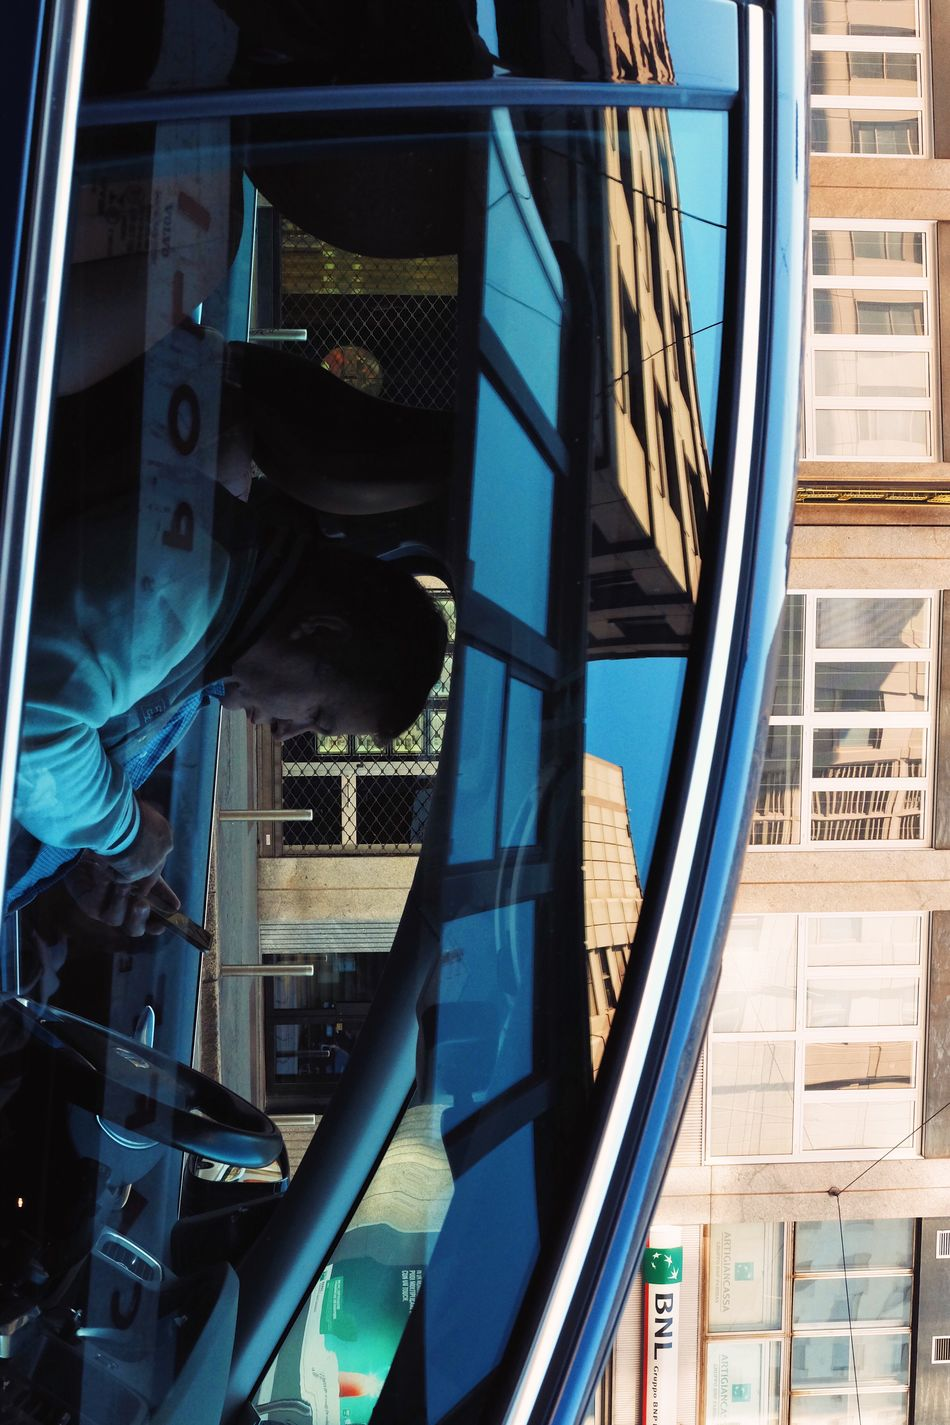 Urban reflections /2. Architecture Close-up Built Structure Building Exterior Outdoors Day Sky Reflection Car